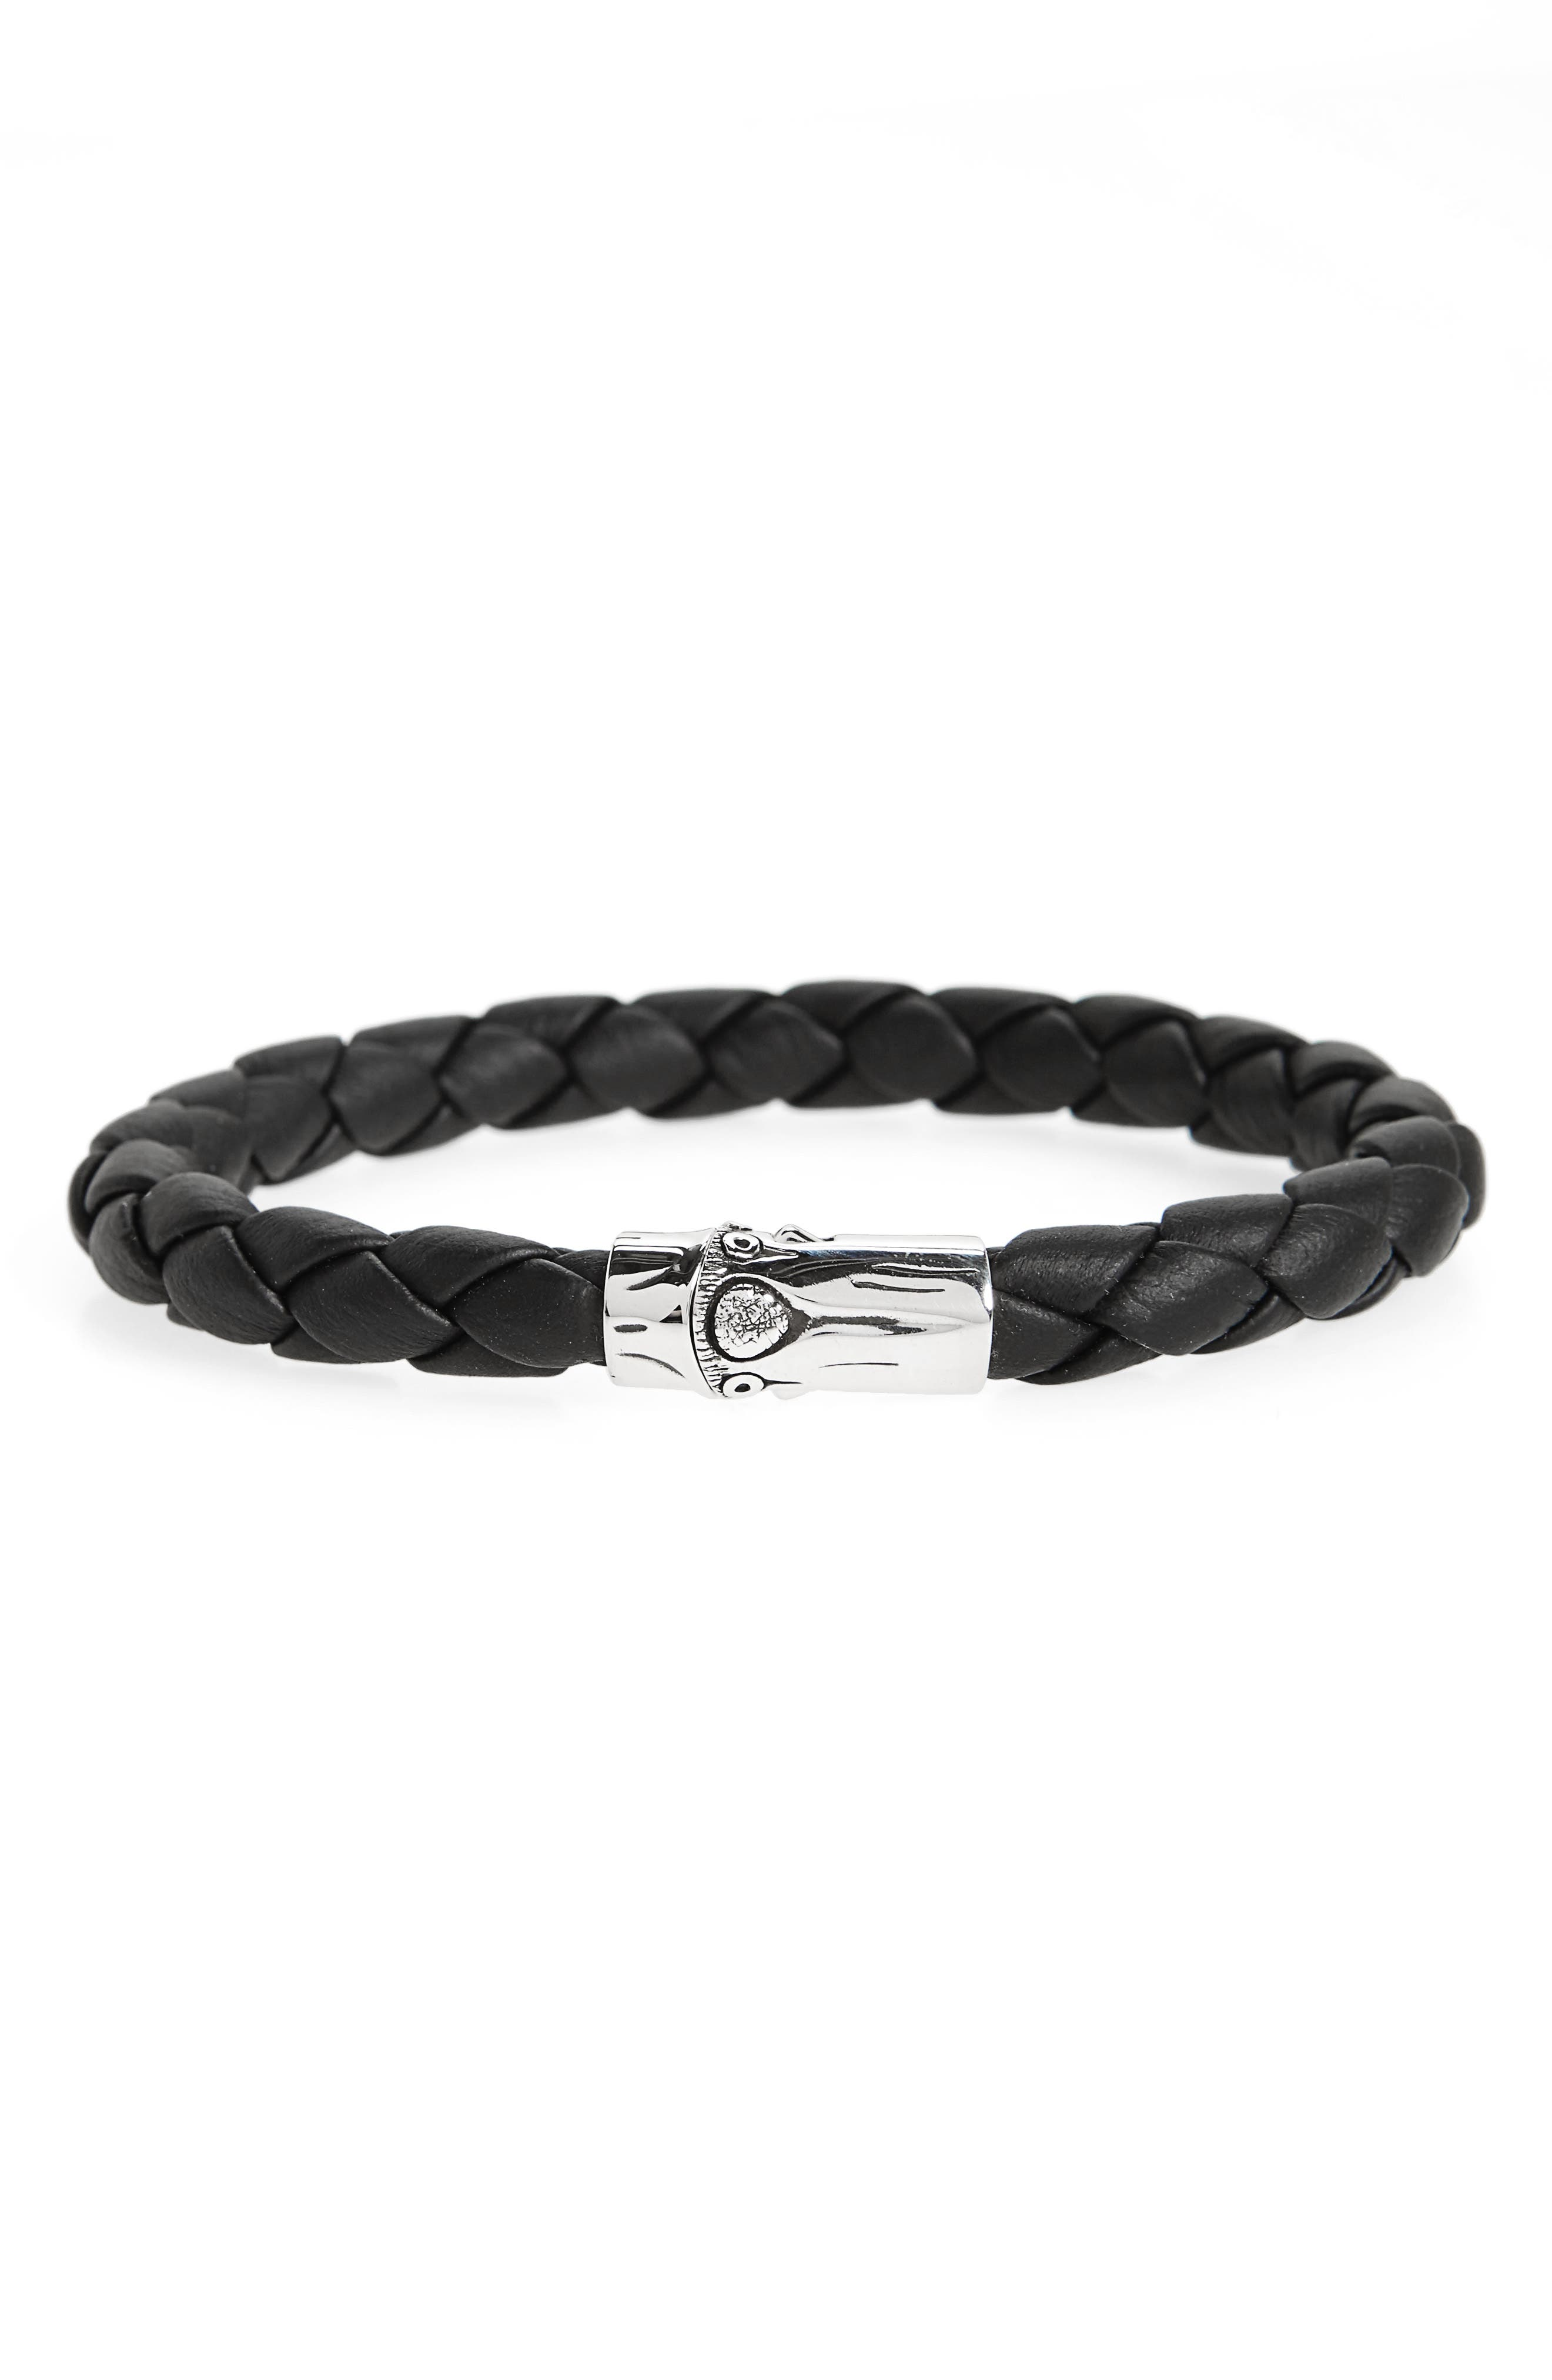 Bamboo Braided Leather Bracelet,                         Main,                         color, SILVER/ BLACK